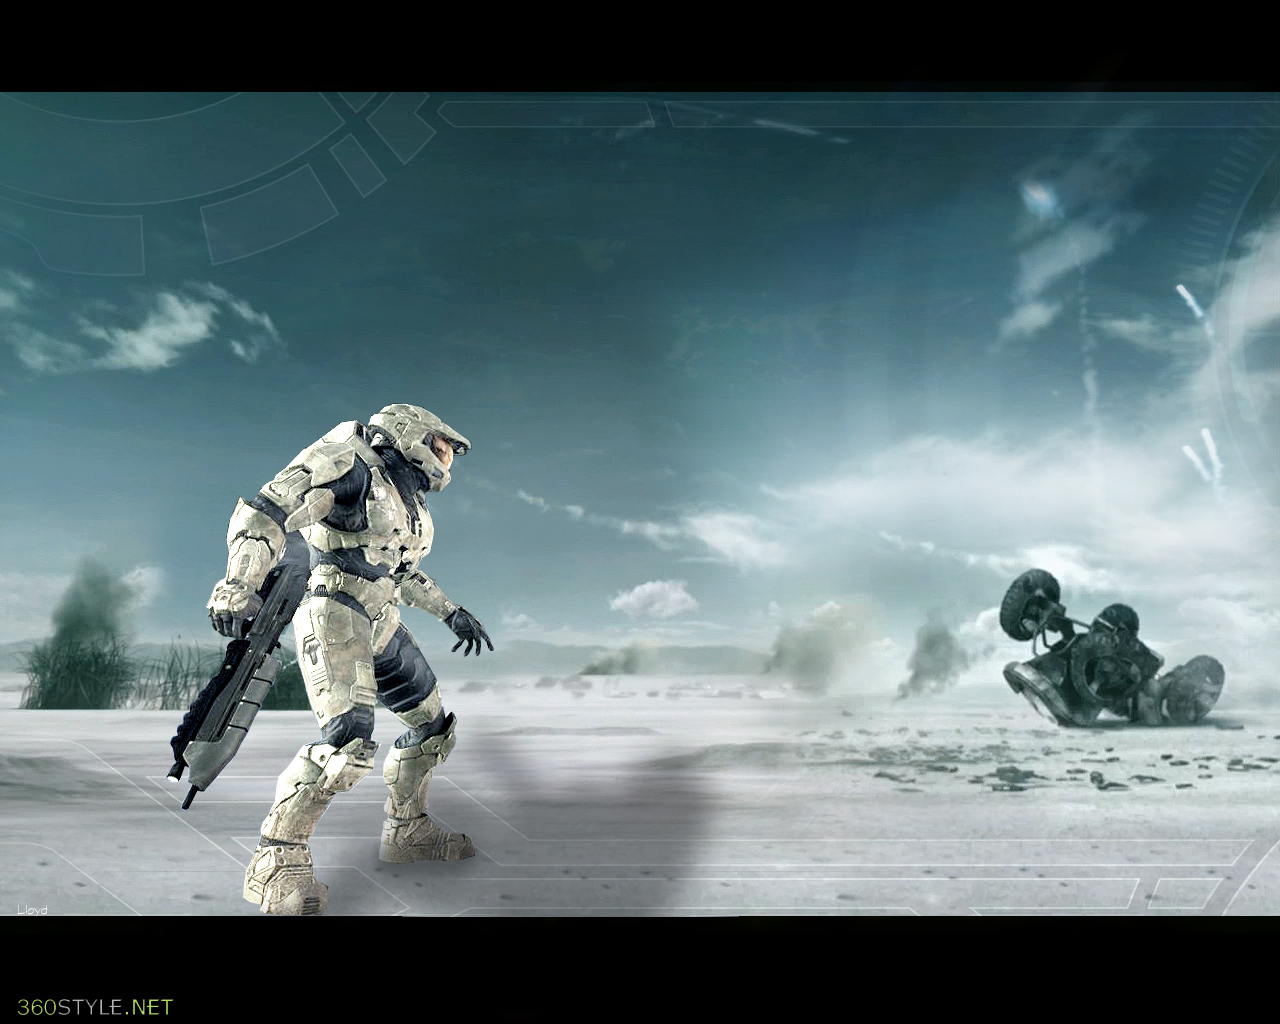 Cool Halo 3 Wallpapers Halo 3 wallpaper 2 by 1280x1024